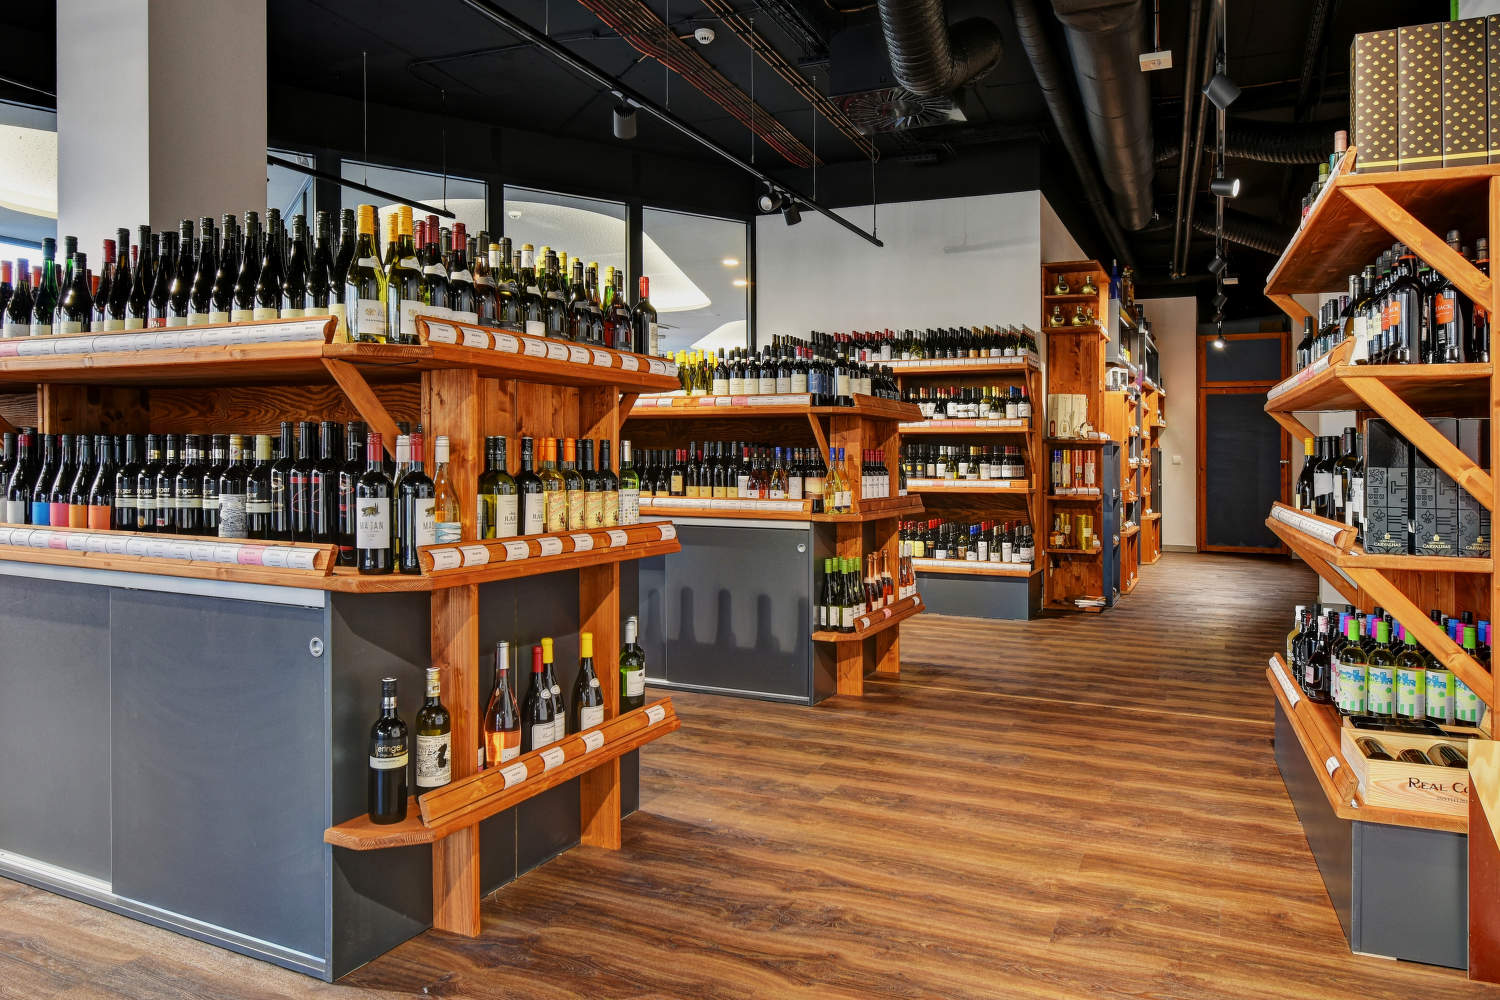 Global Wines & Spirits Holešovice